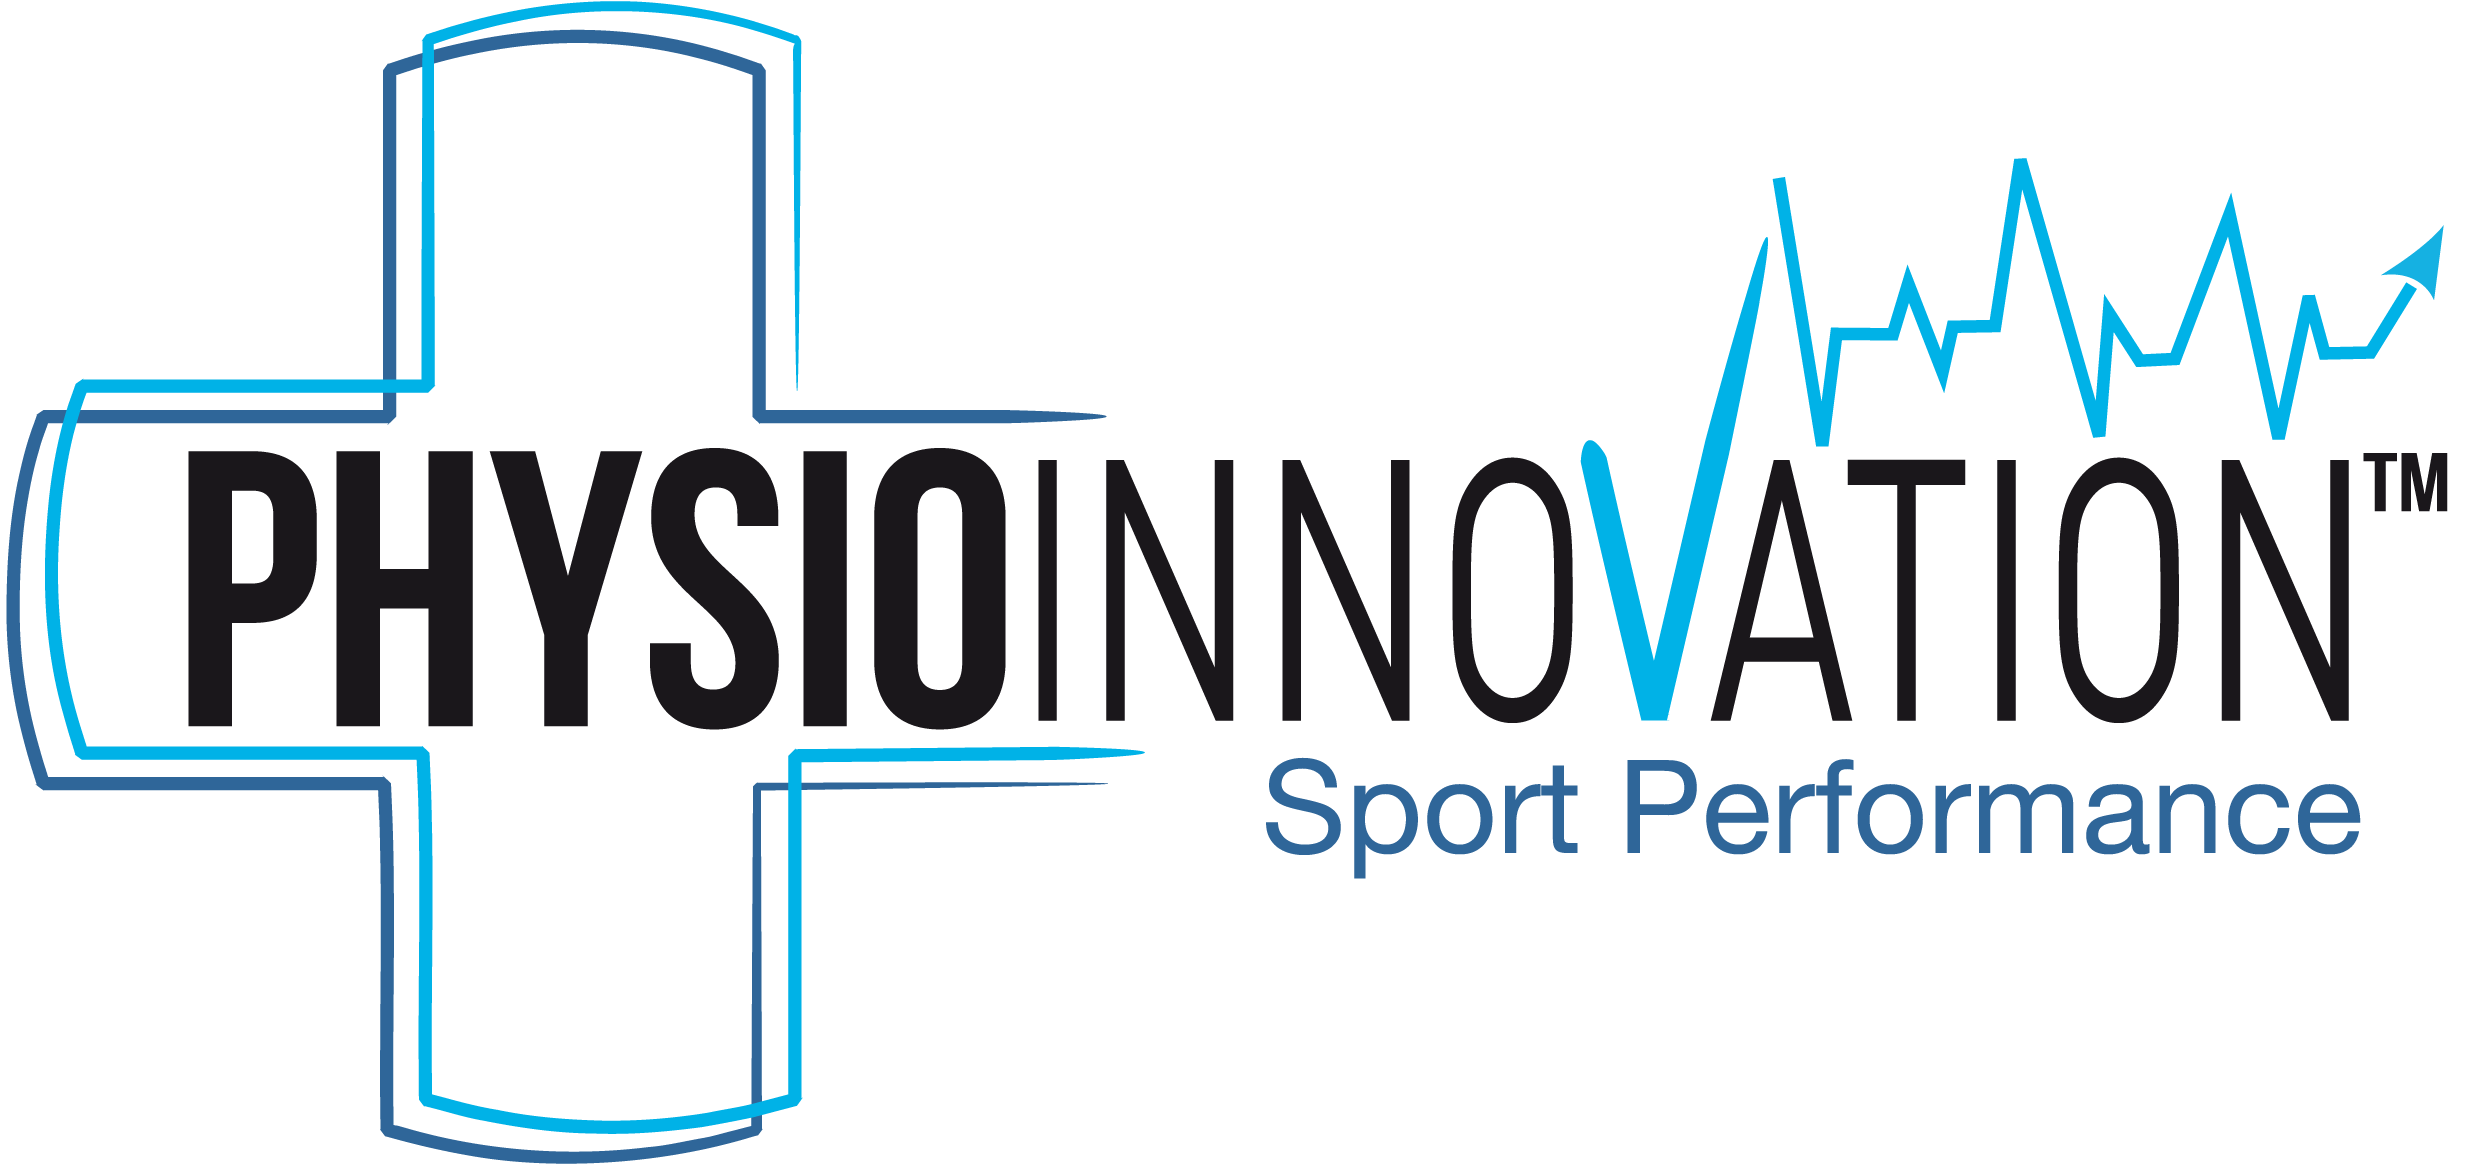 PHYSIOINNOVATION SPORT PERFORMANCE CONSULTING